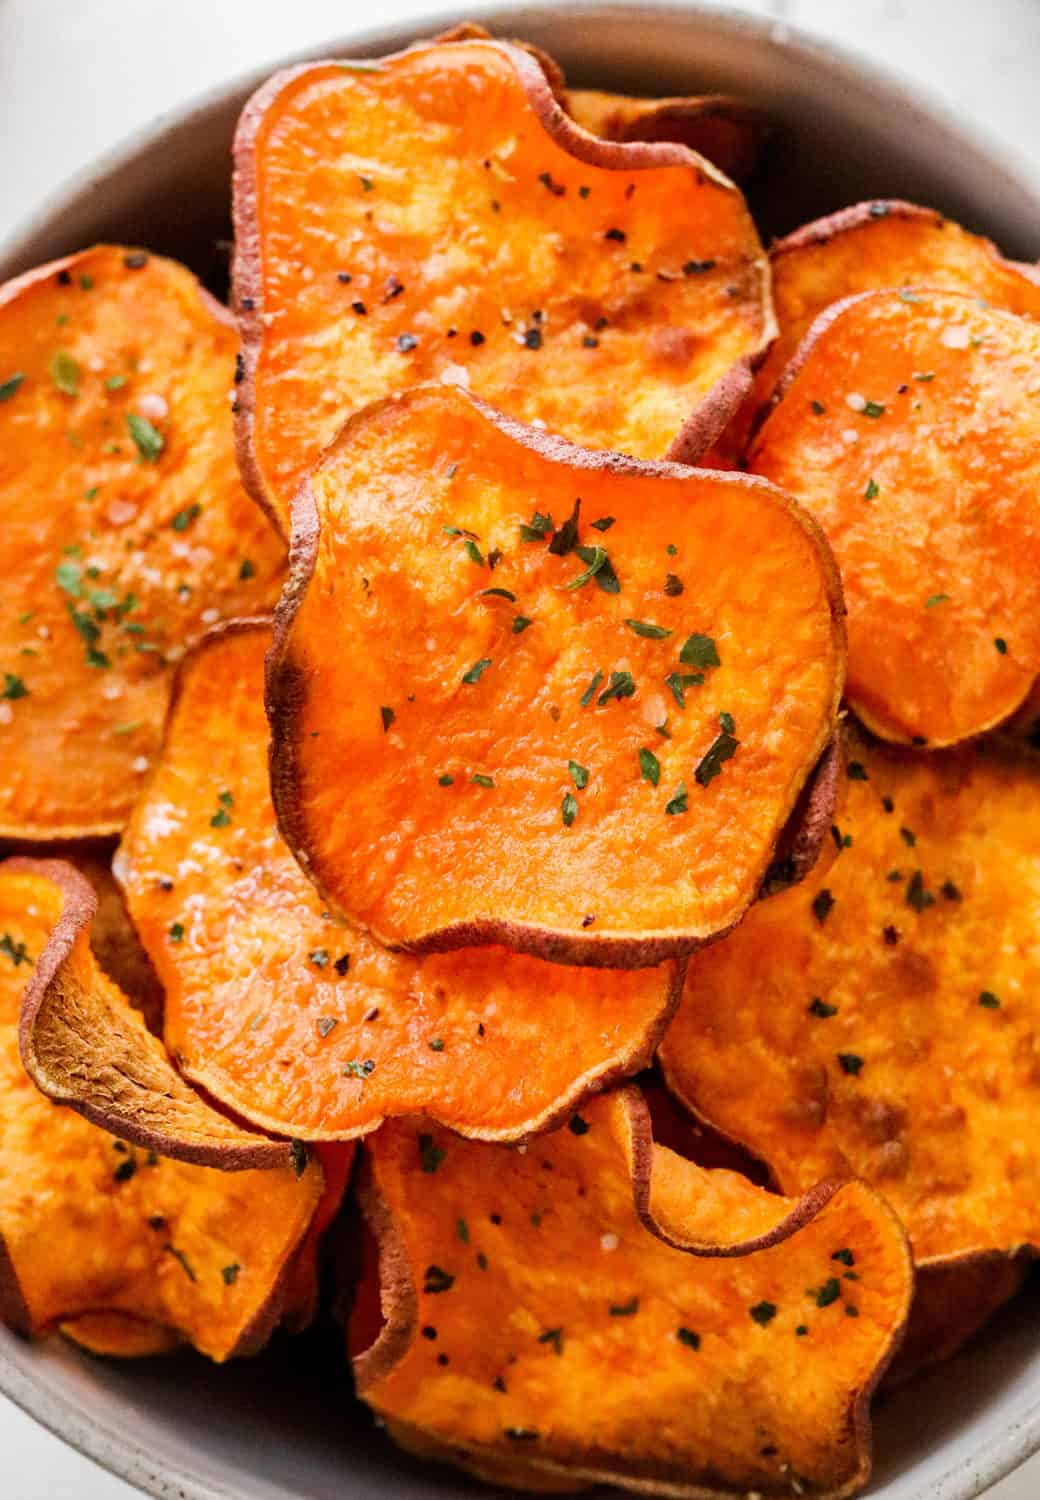 Round sweet potato chips with pepper and parsley on them